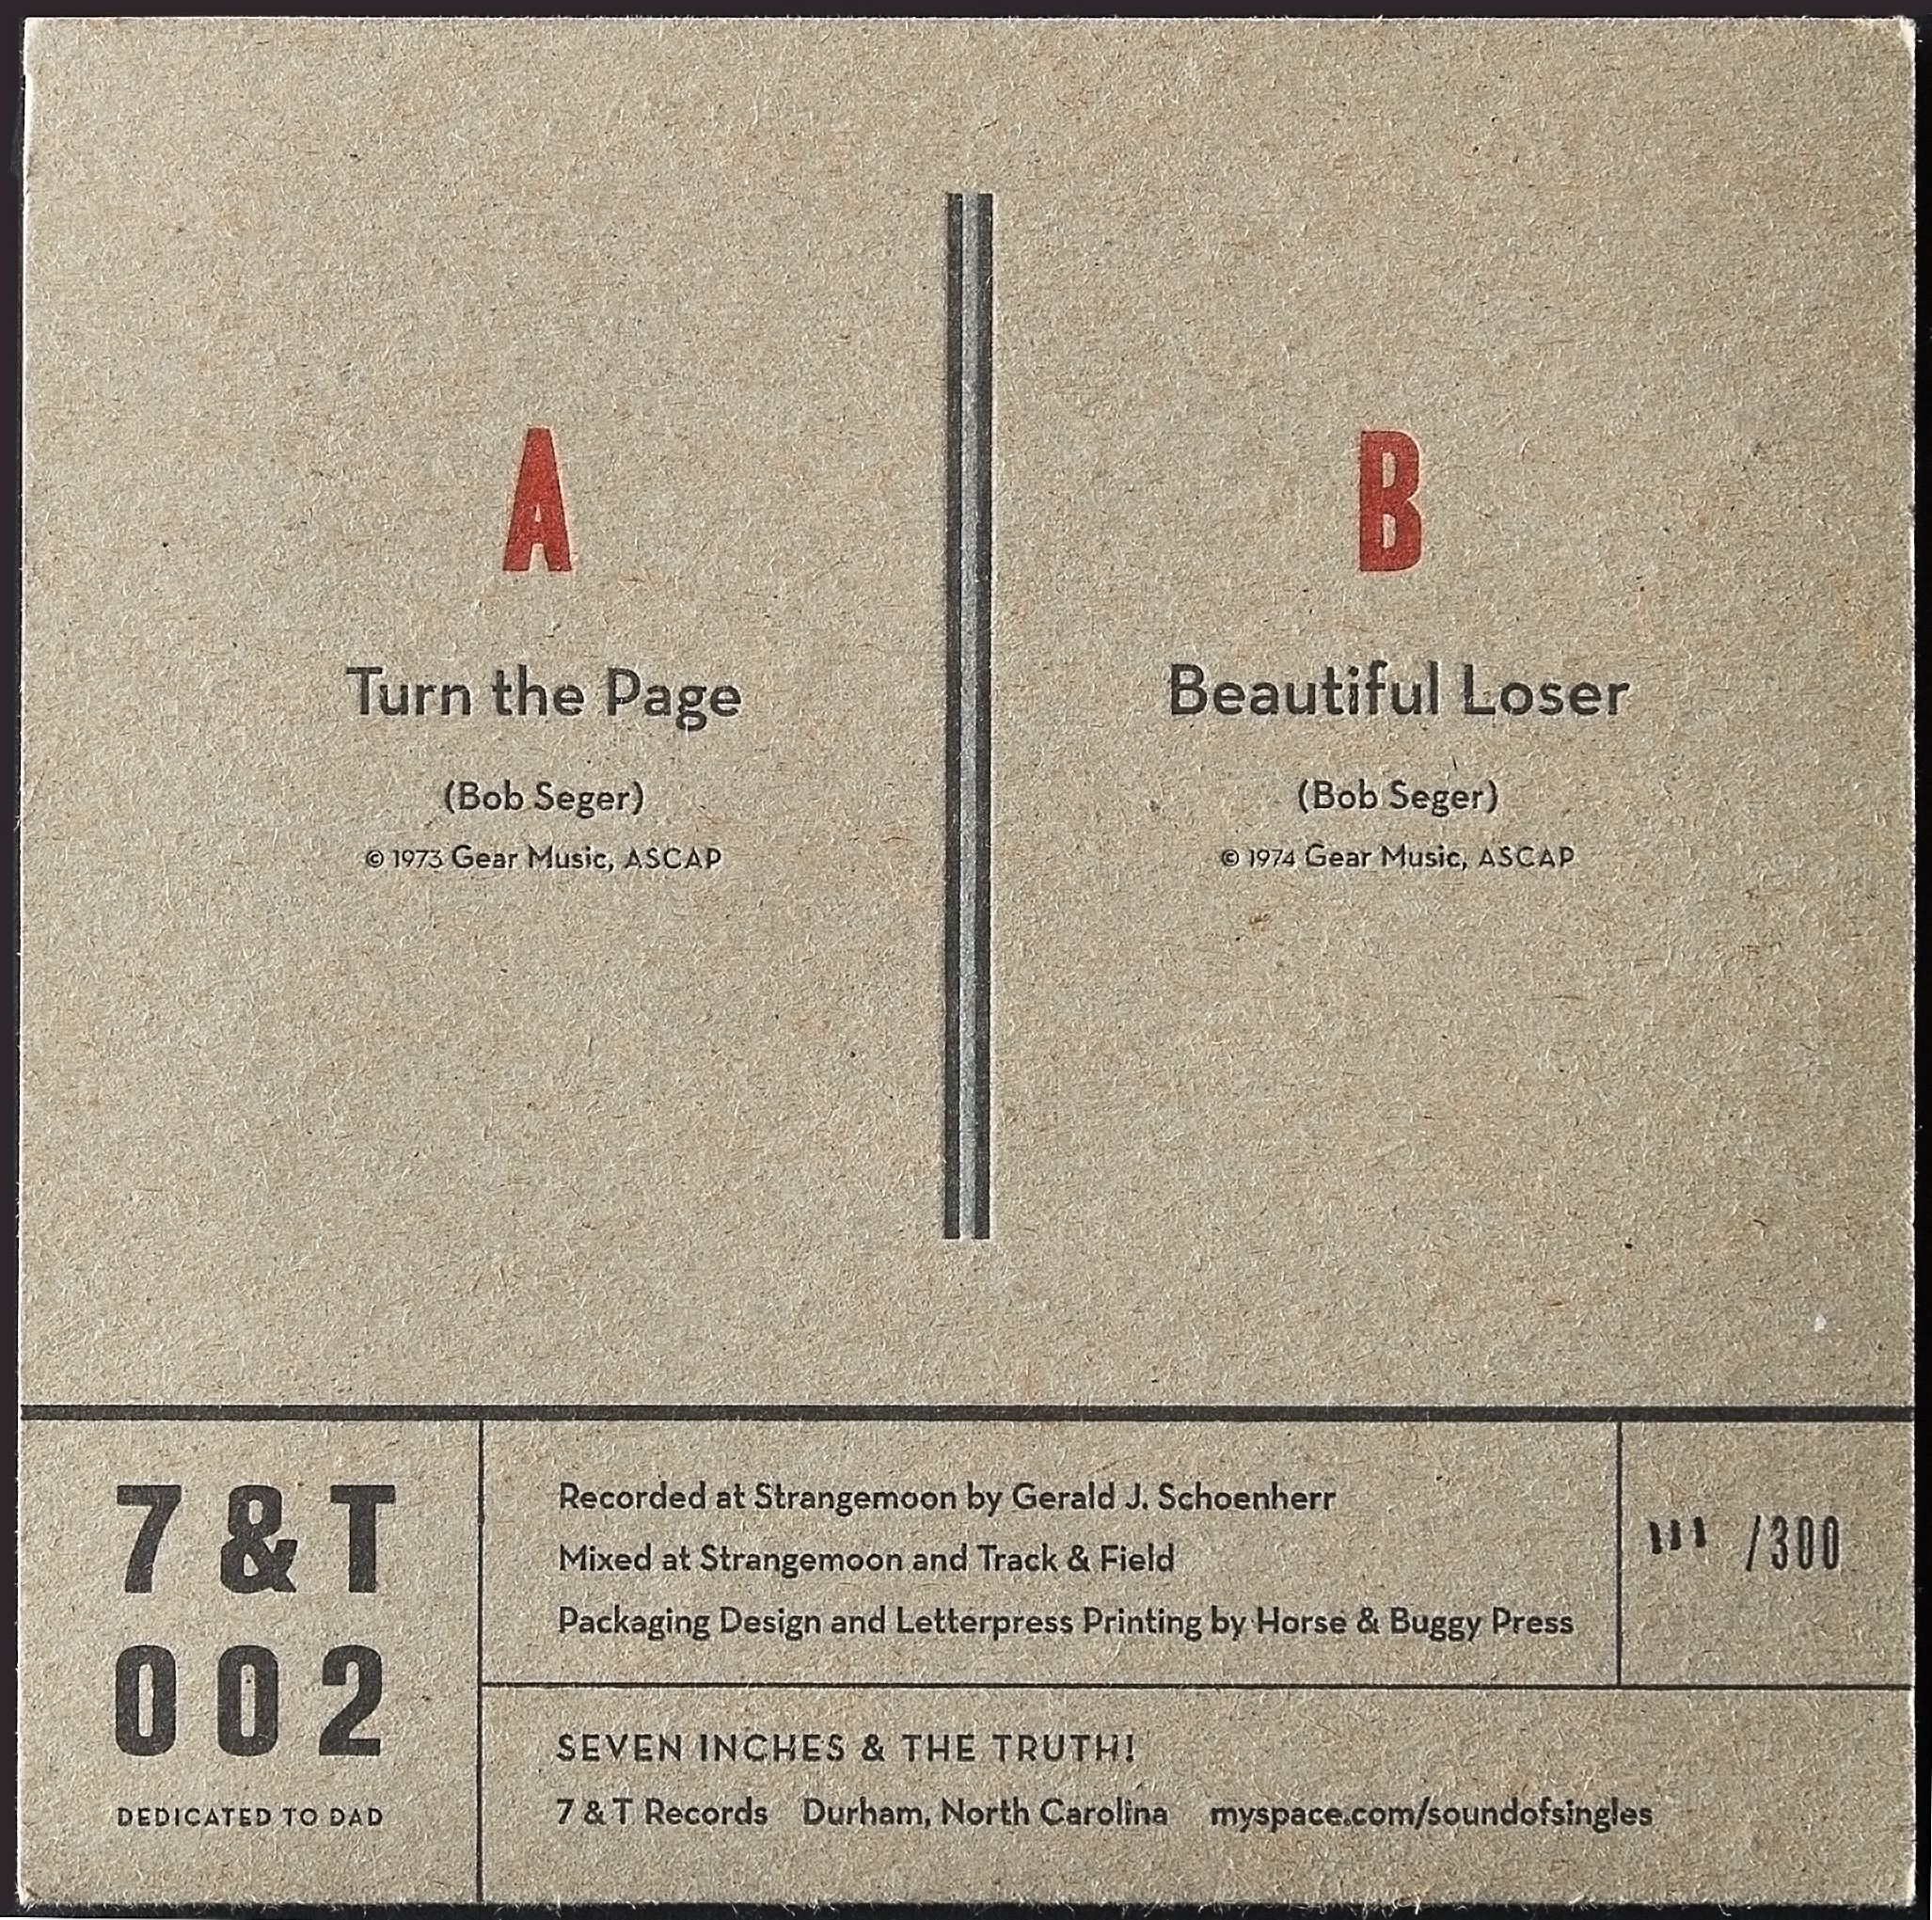 7 inch back cover.